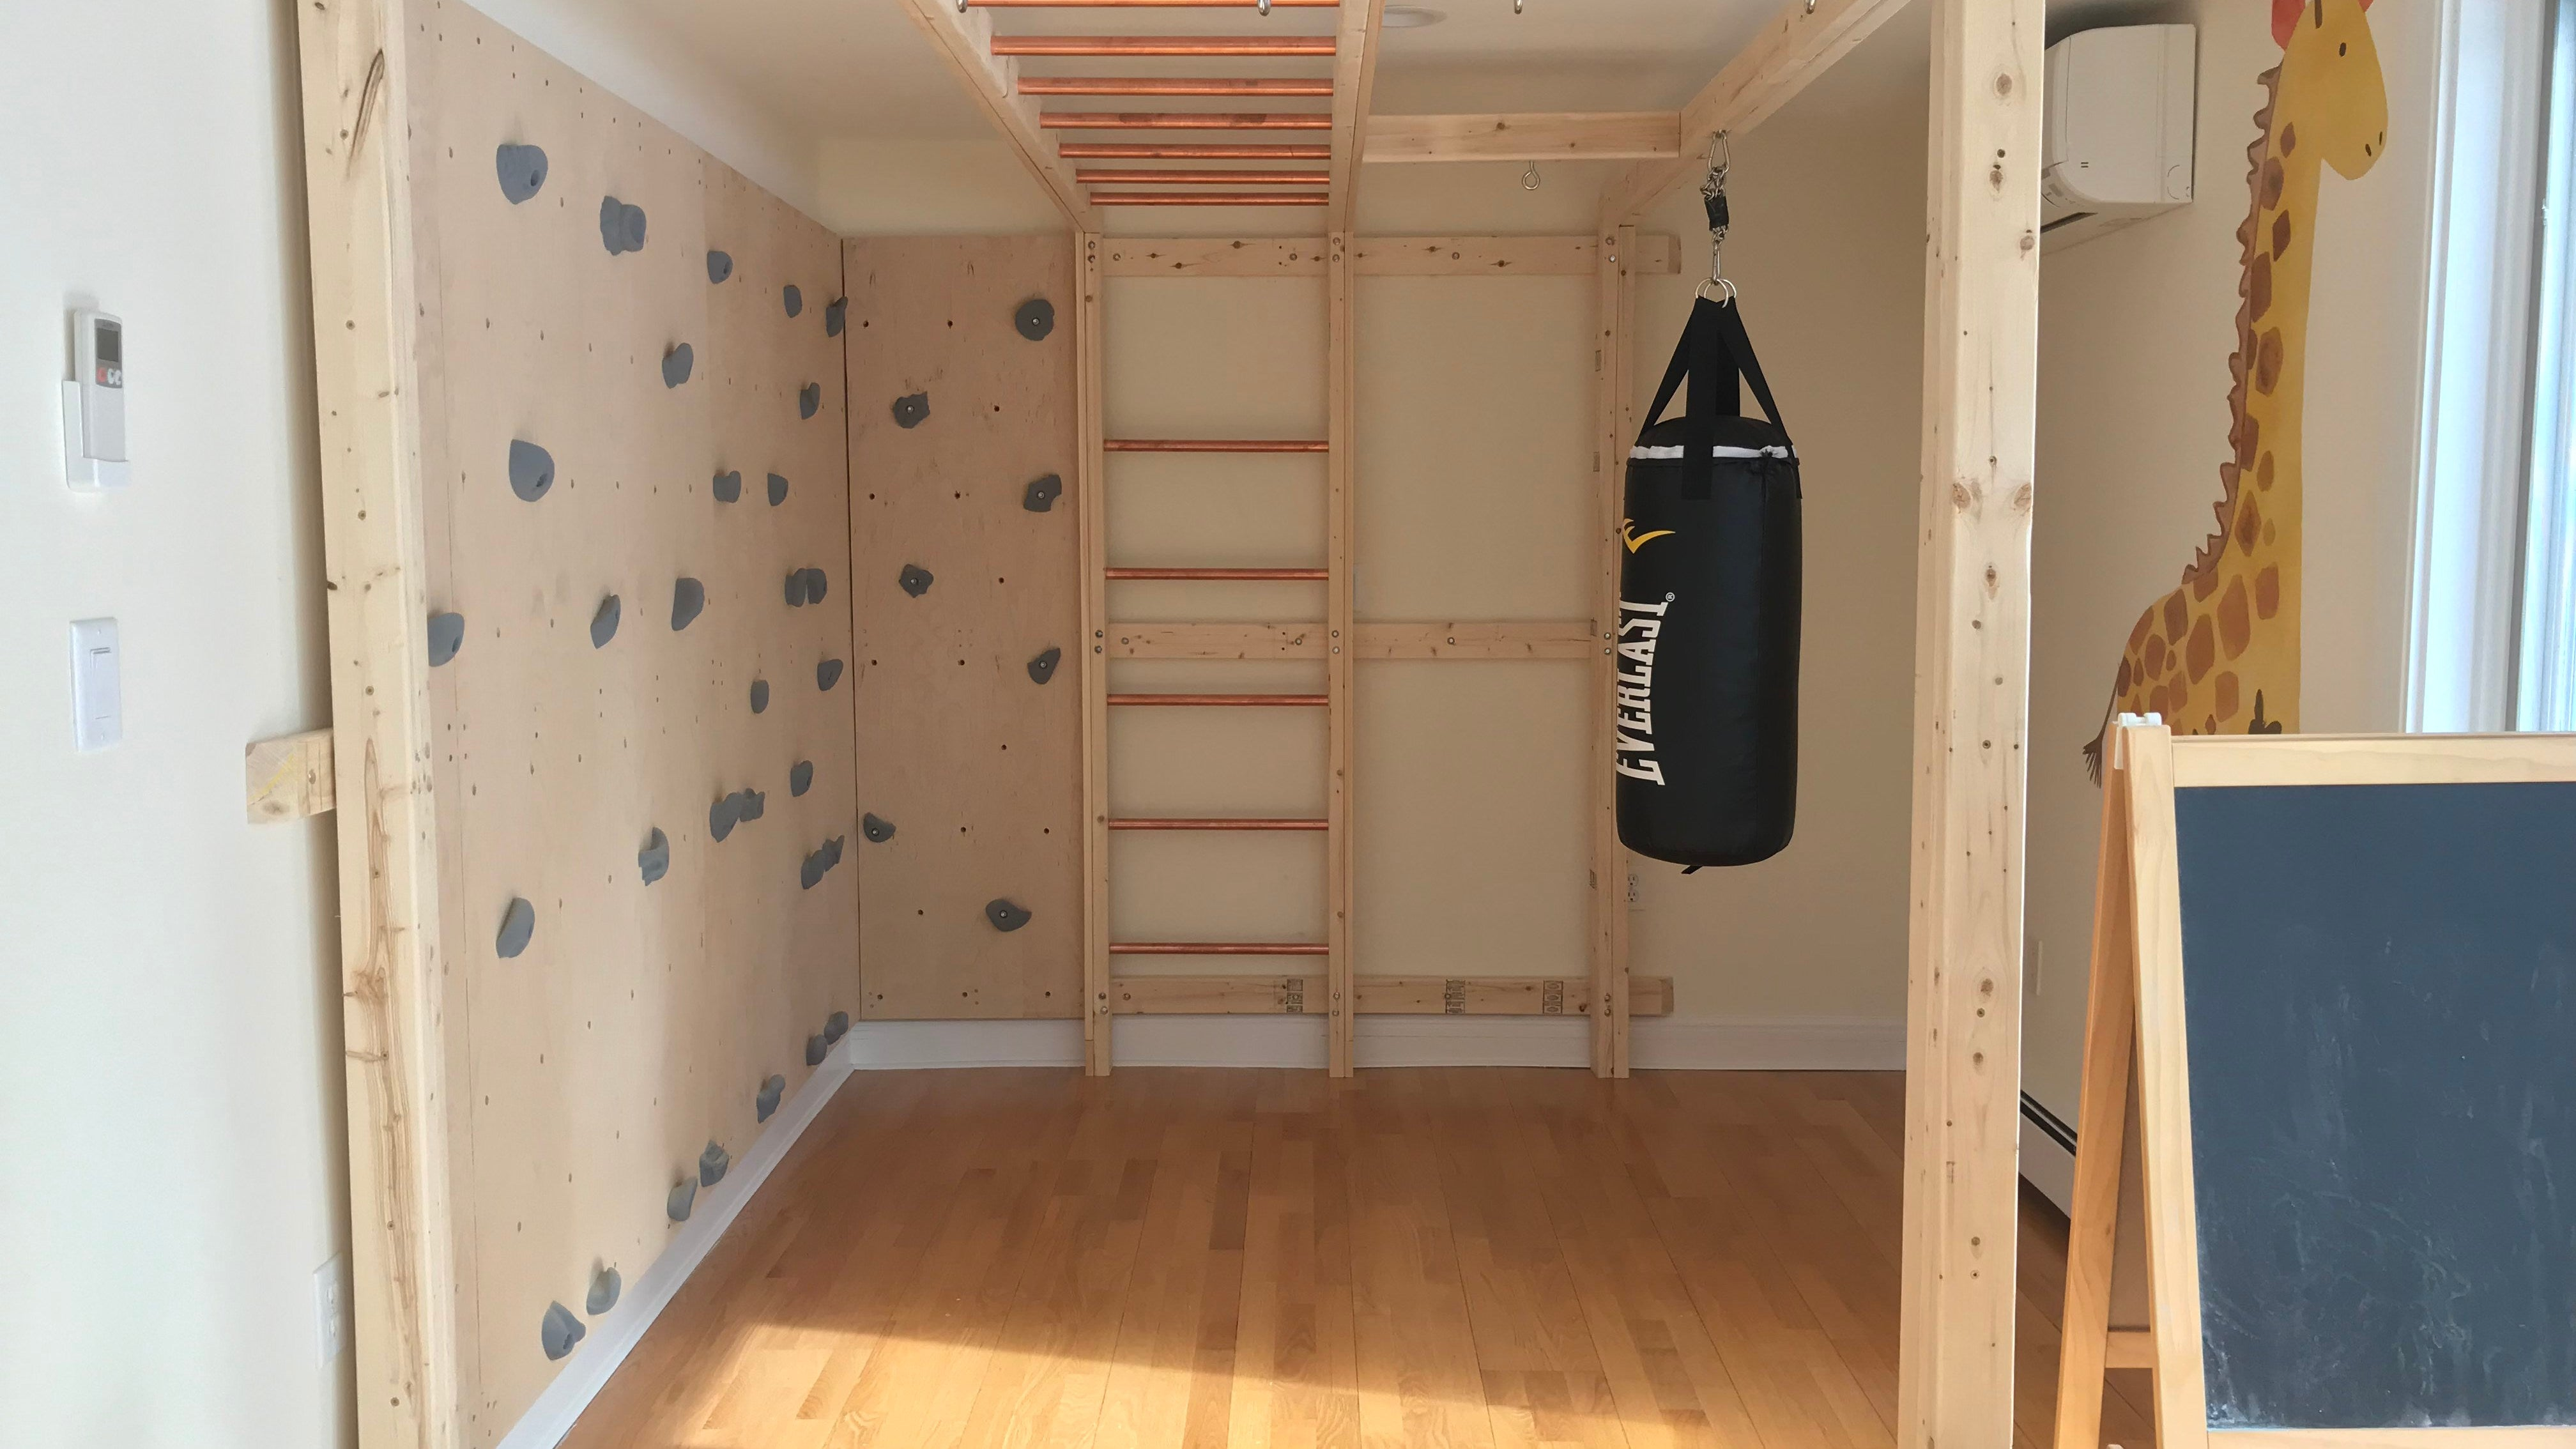 How To Build A Rock Wall In Your House